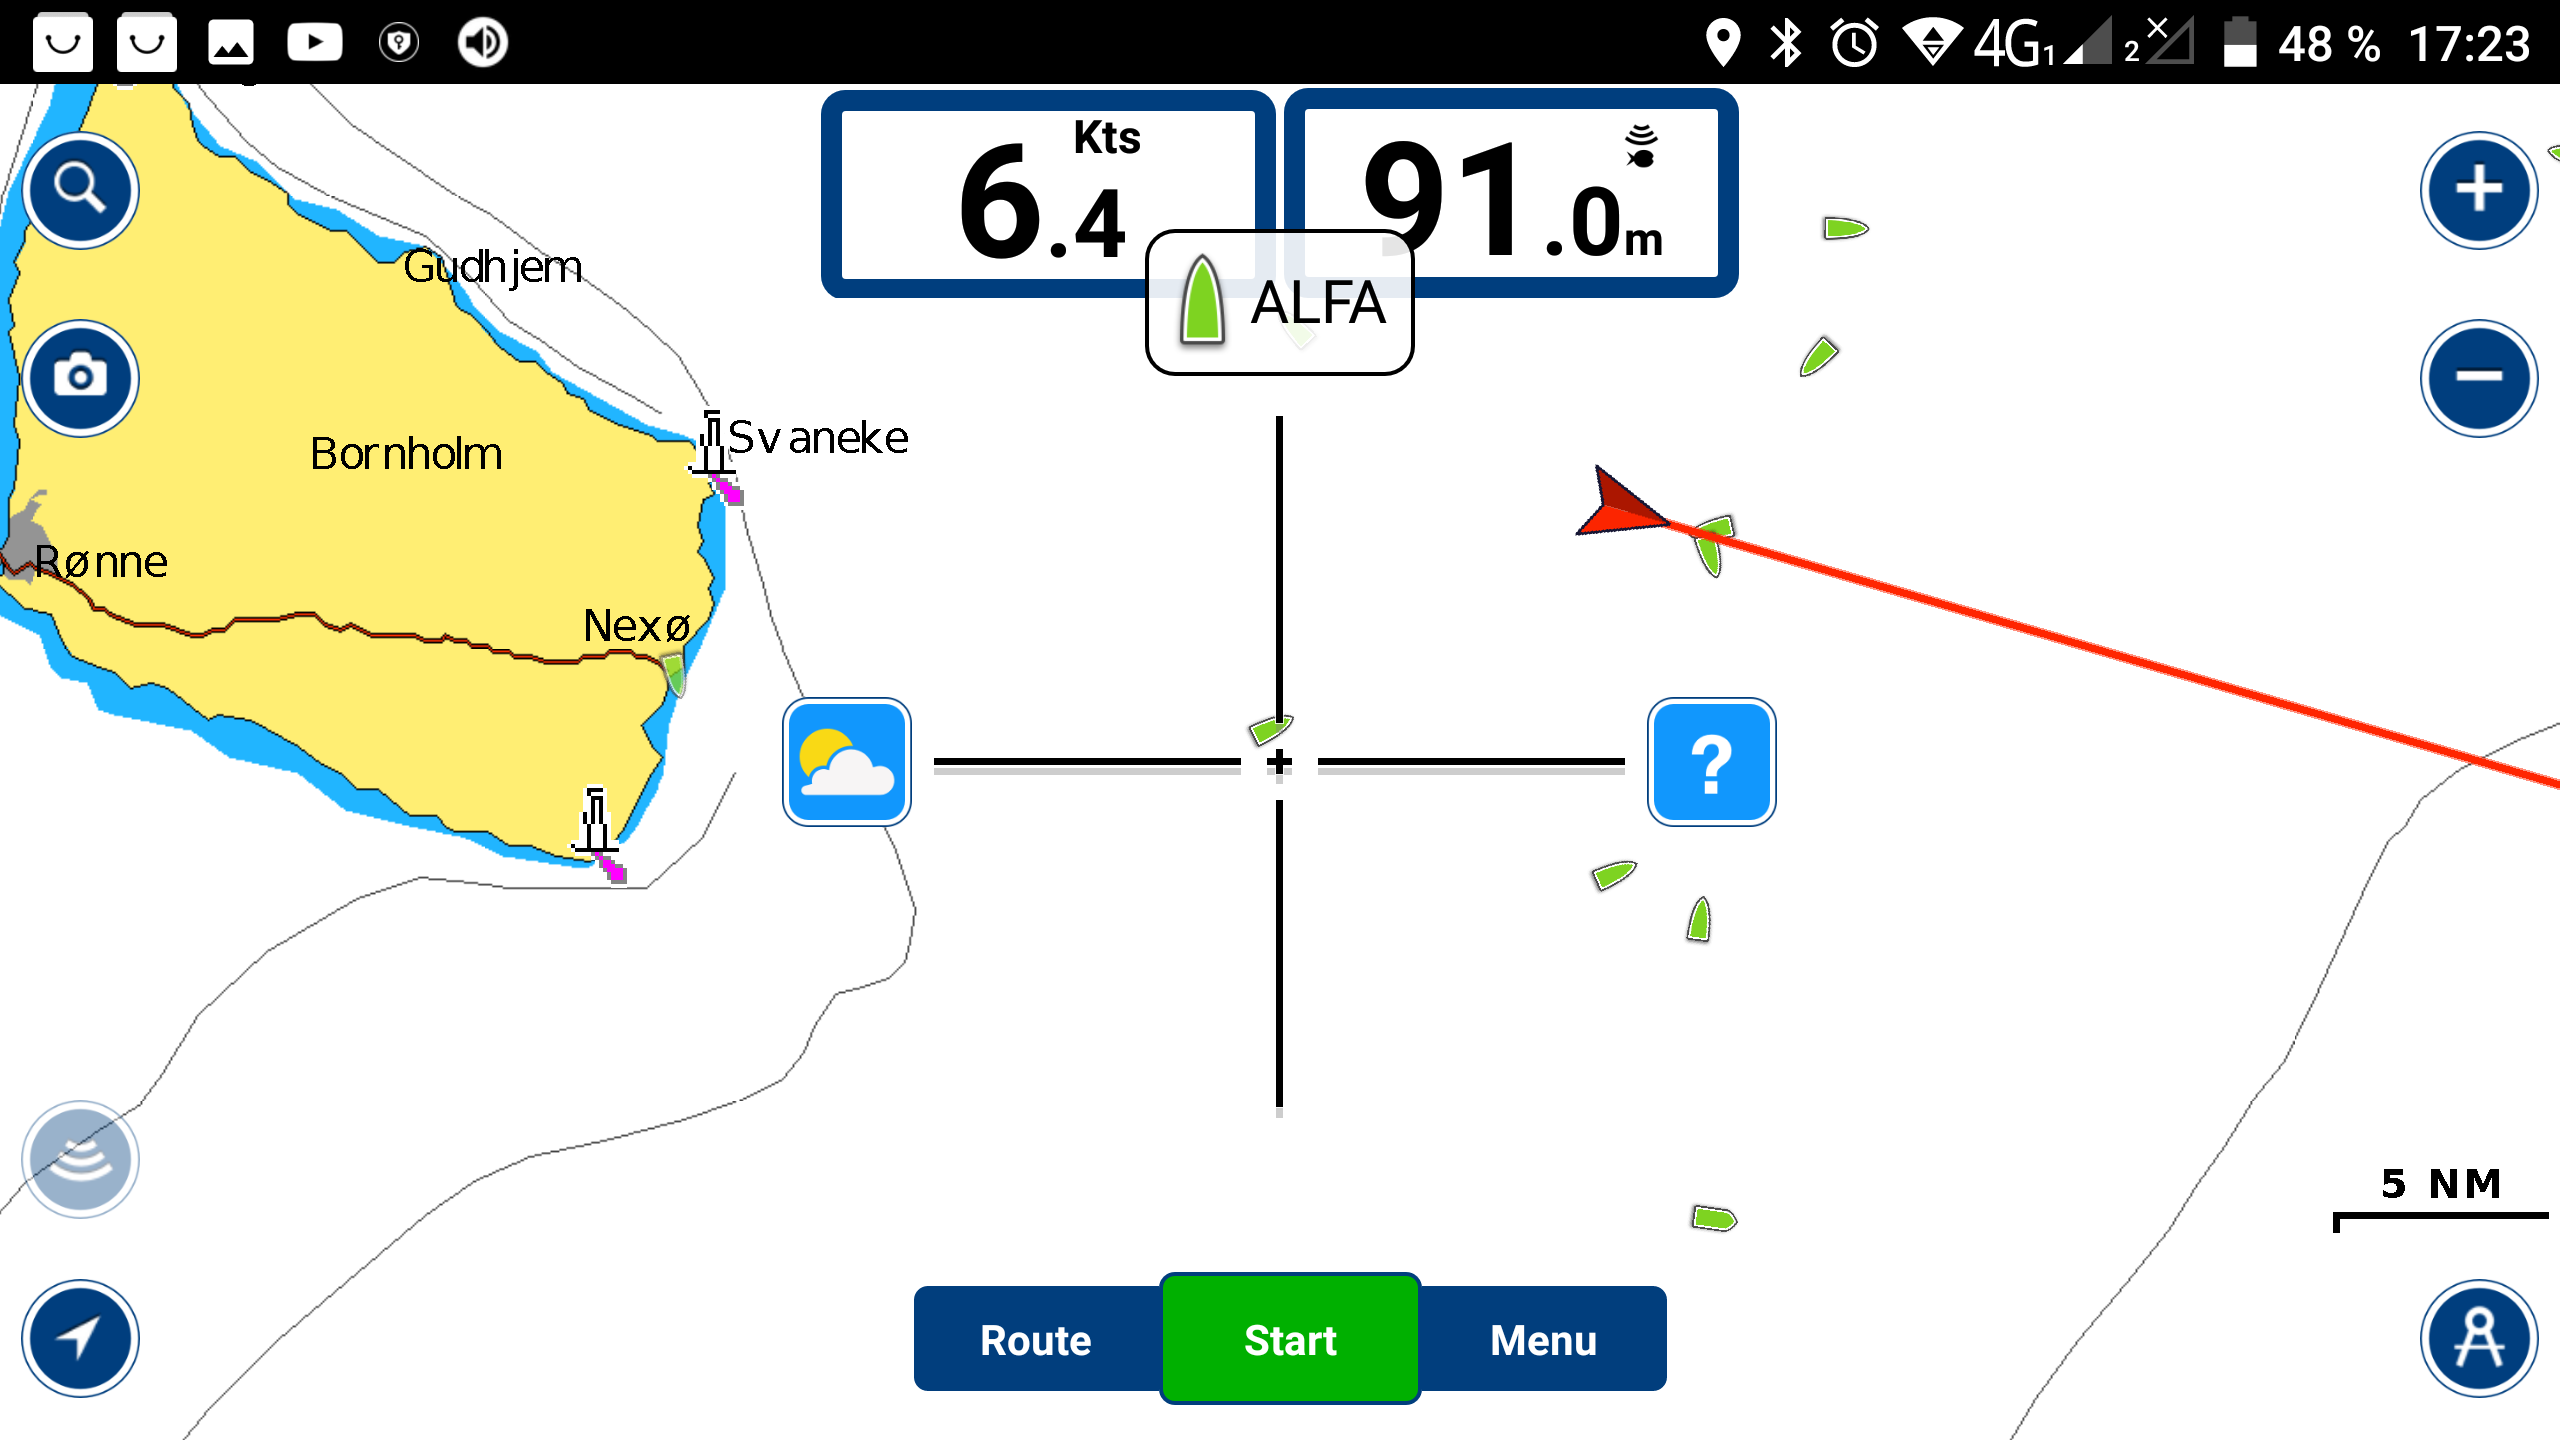 Navionics Boating App with AIS data